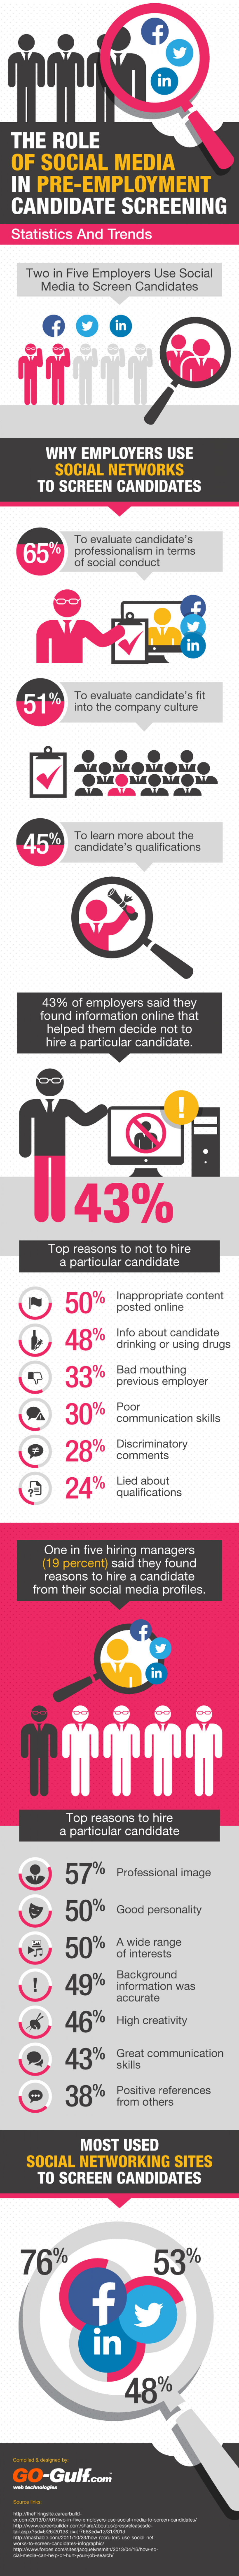 The Role Of Social Media In Pre-Employment Candidate Screening Infographic